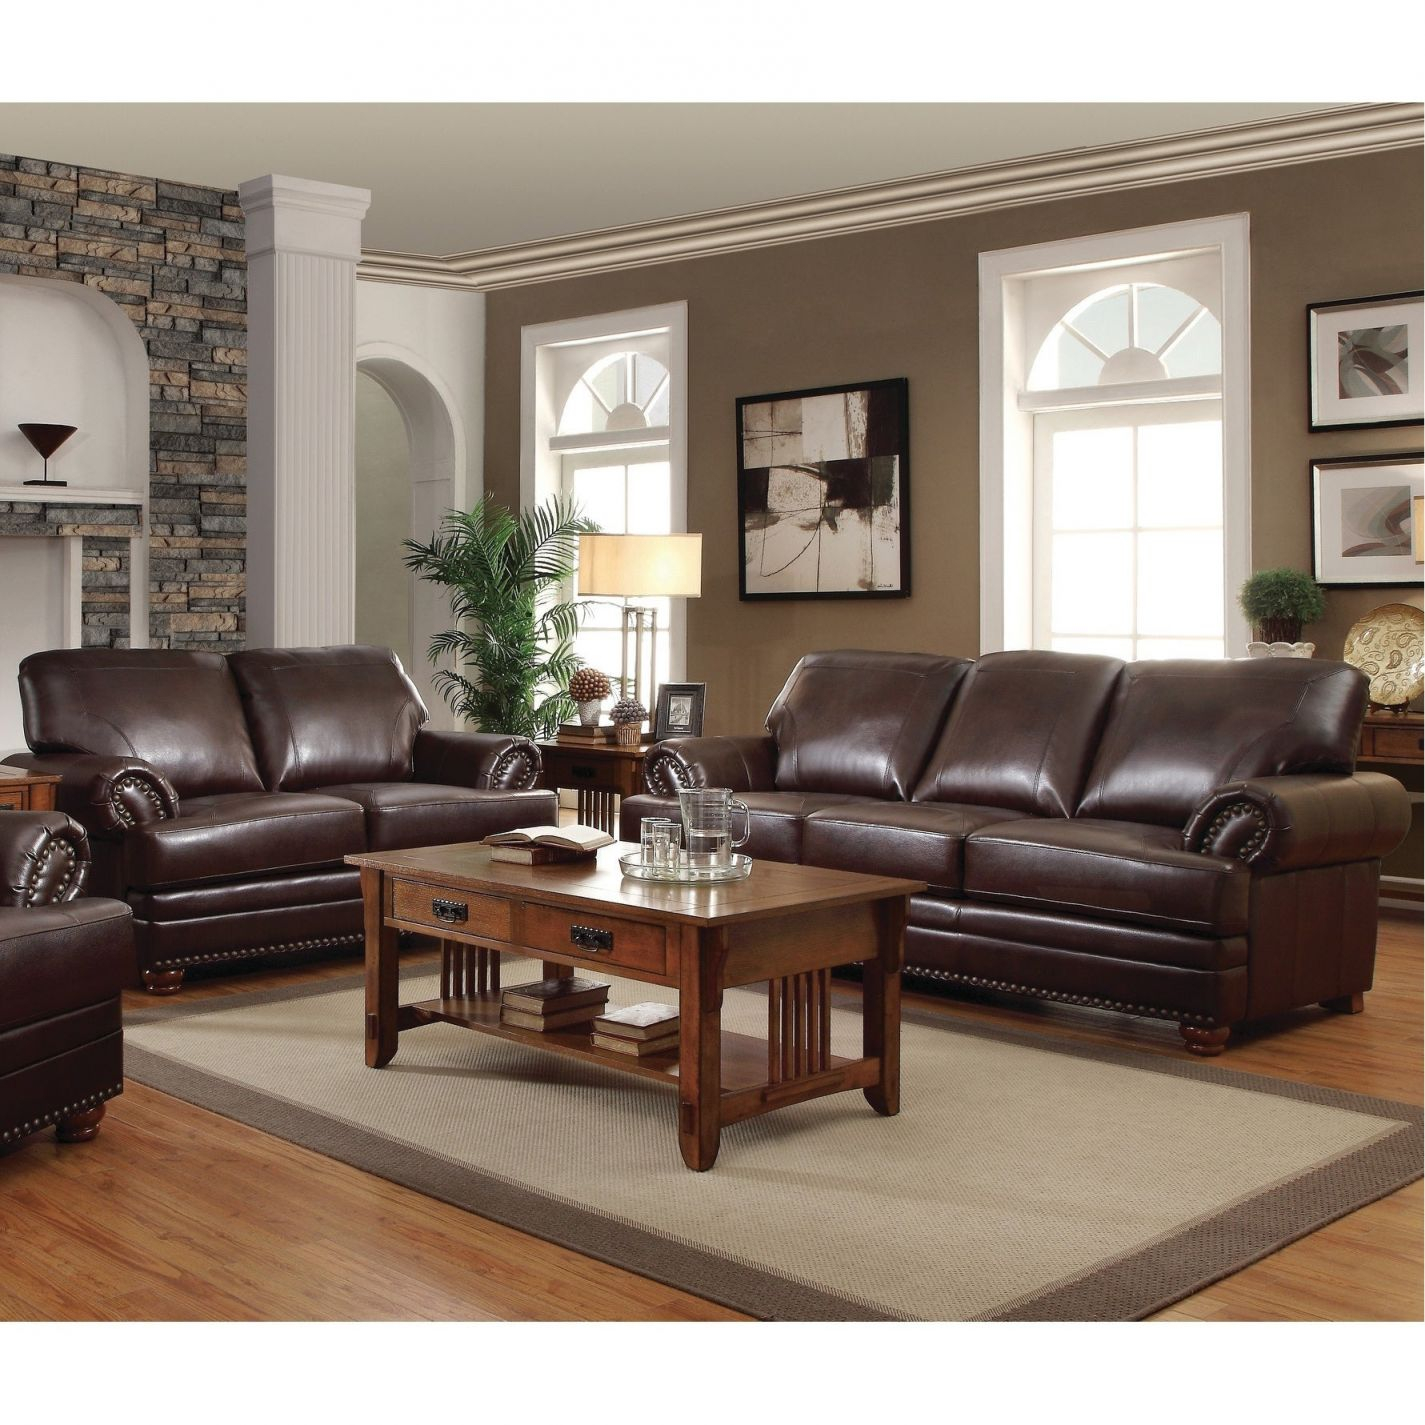 Colton Brown 2-Piece Leather Living Room Set throughout Leather Living Room Sets